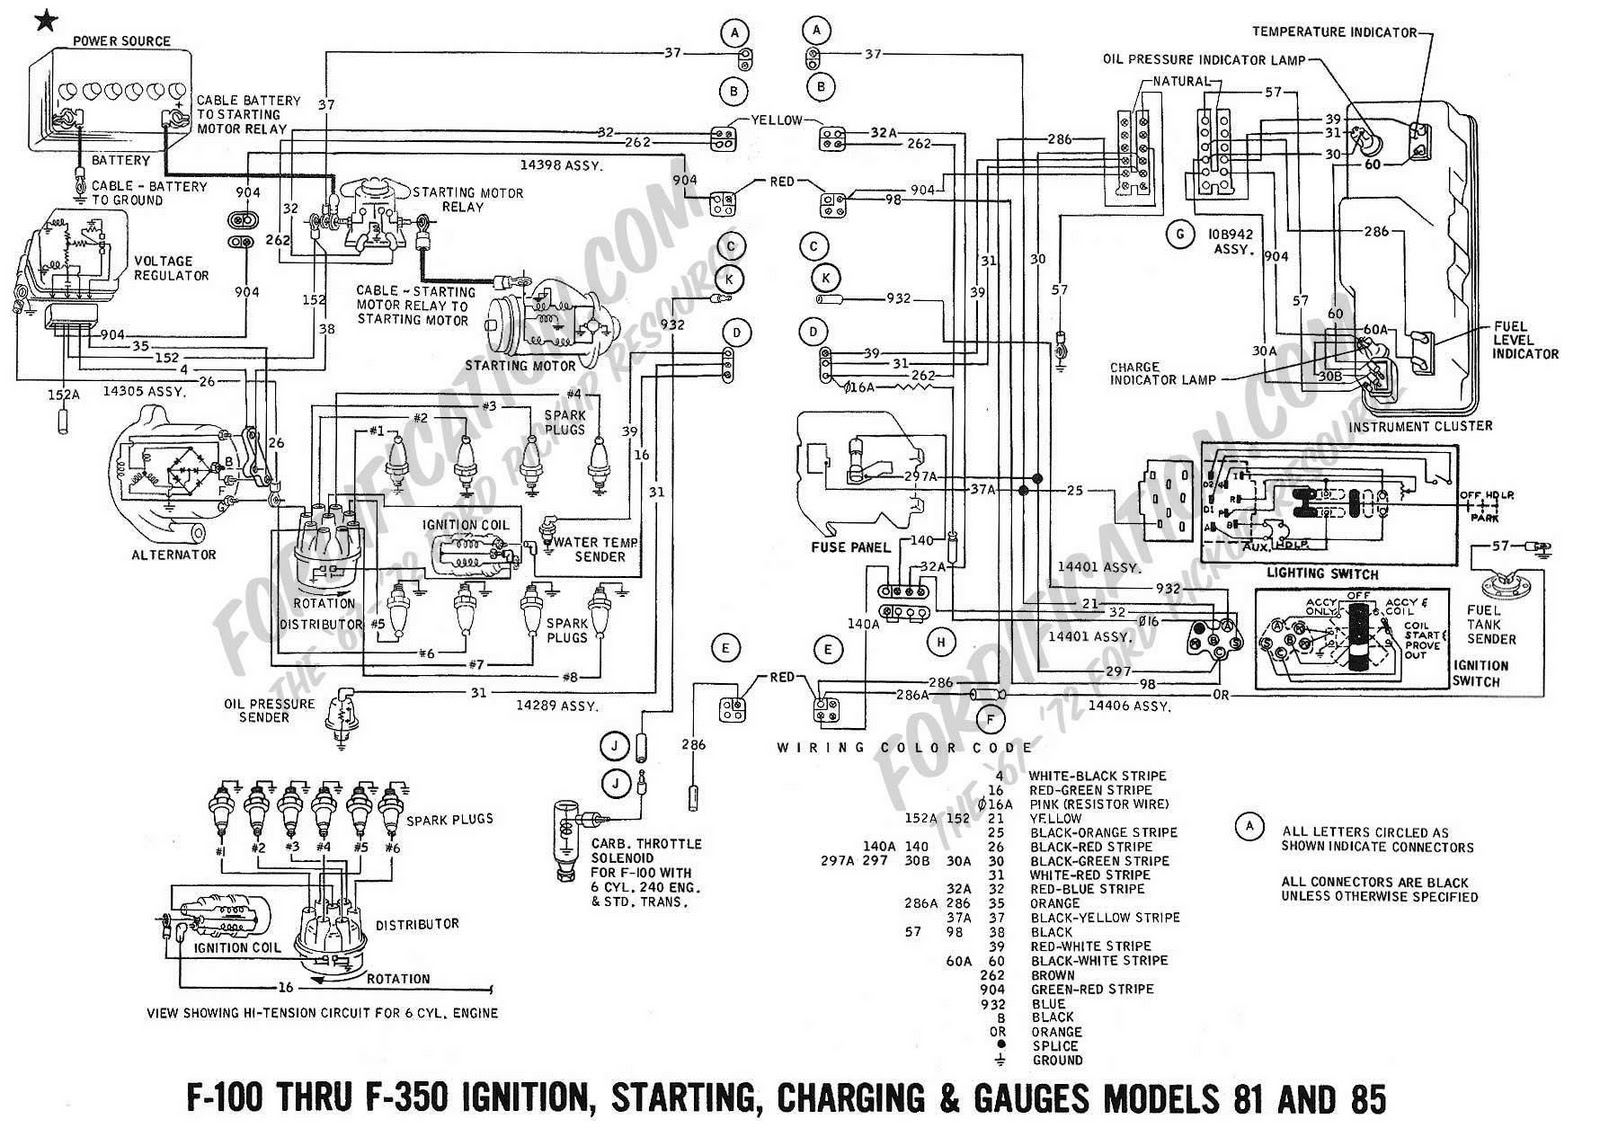 Ford F F Ignition C Starting C Charging C And Gauges Wiring Diagram on 1956 ford thunderbird wiring diagram